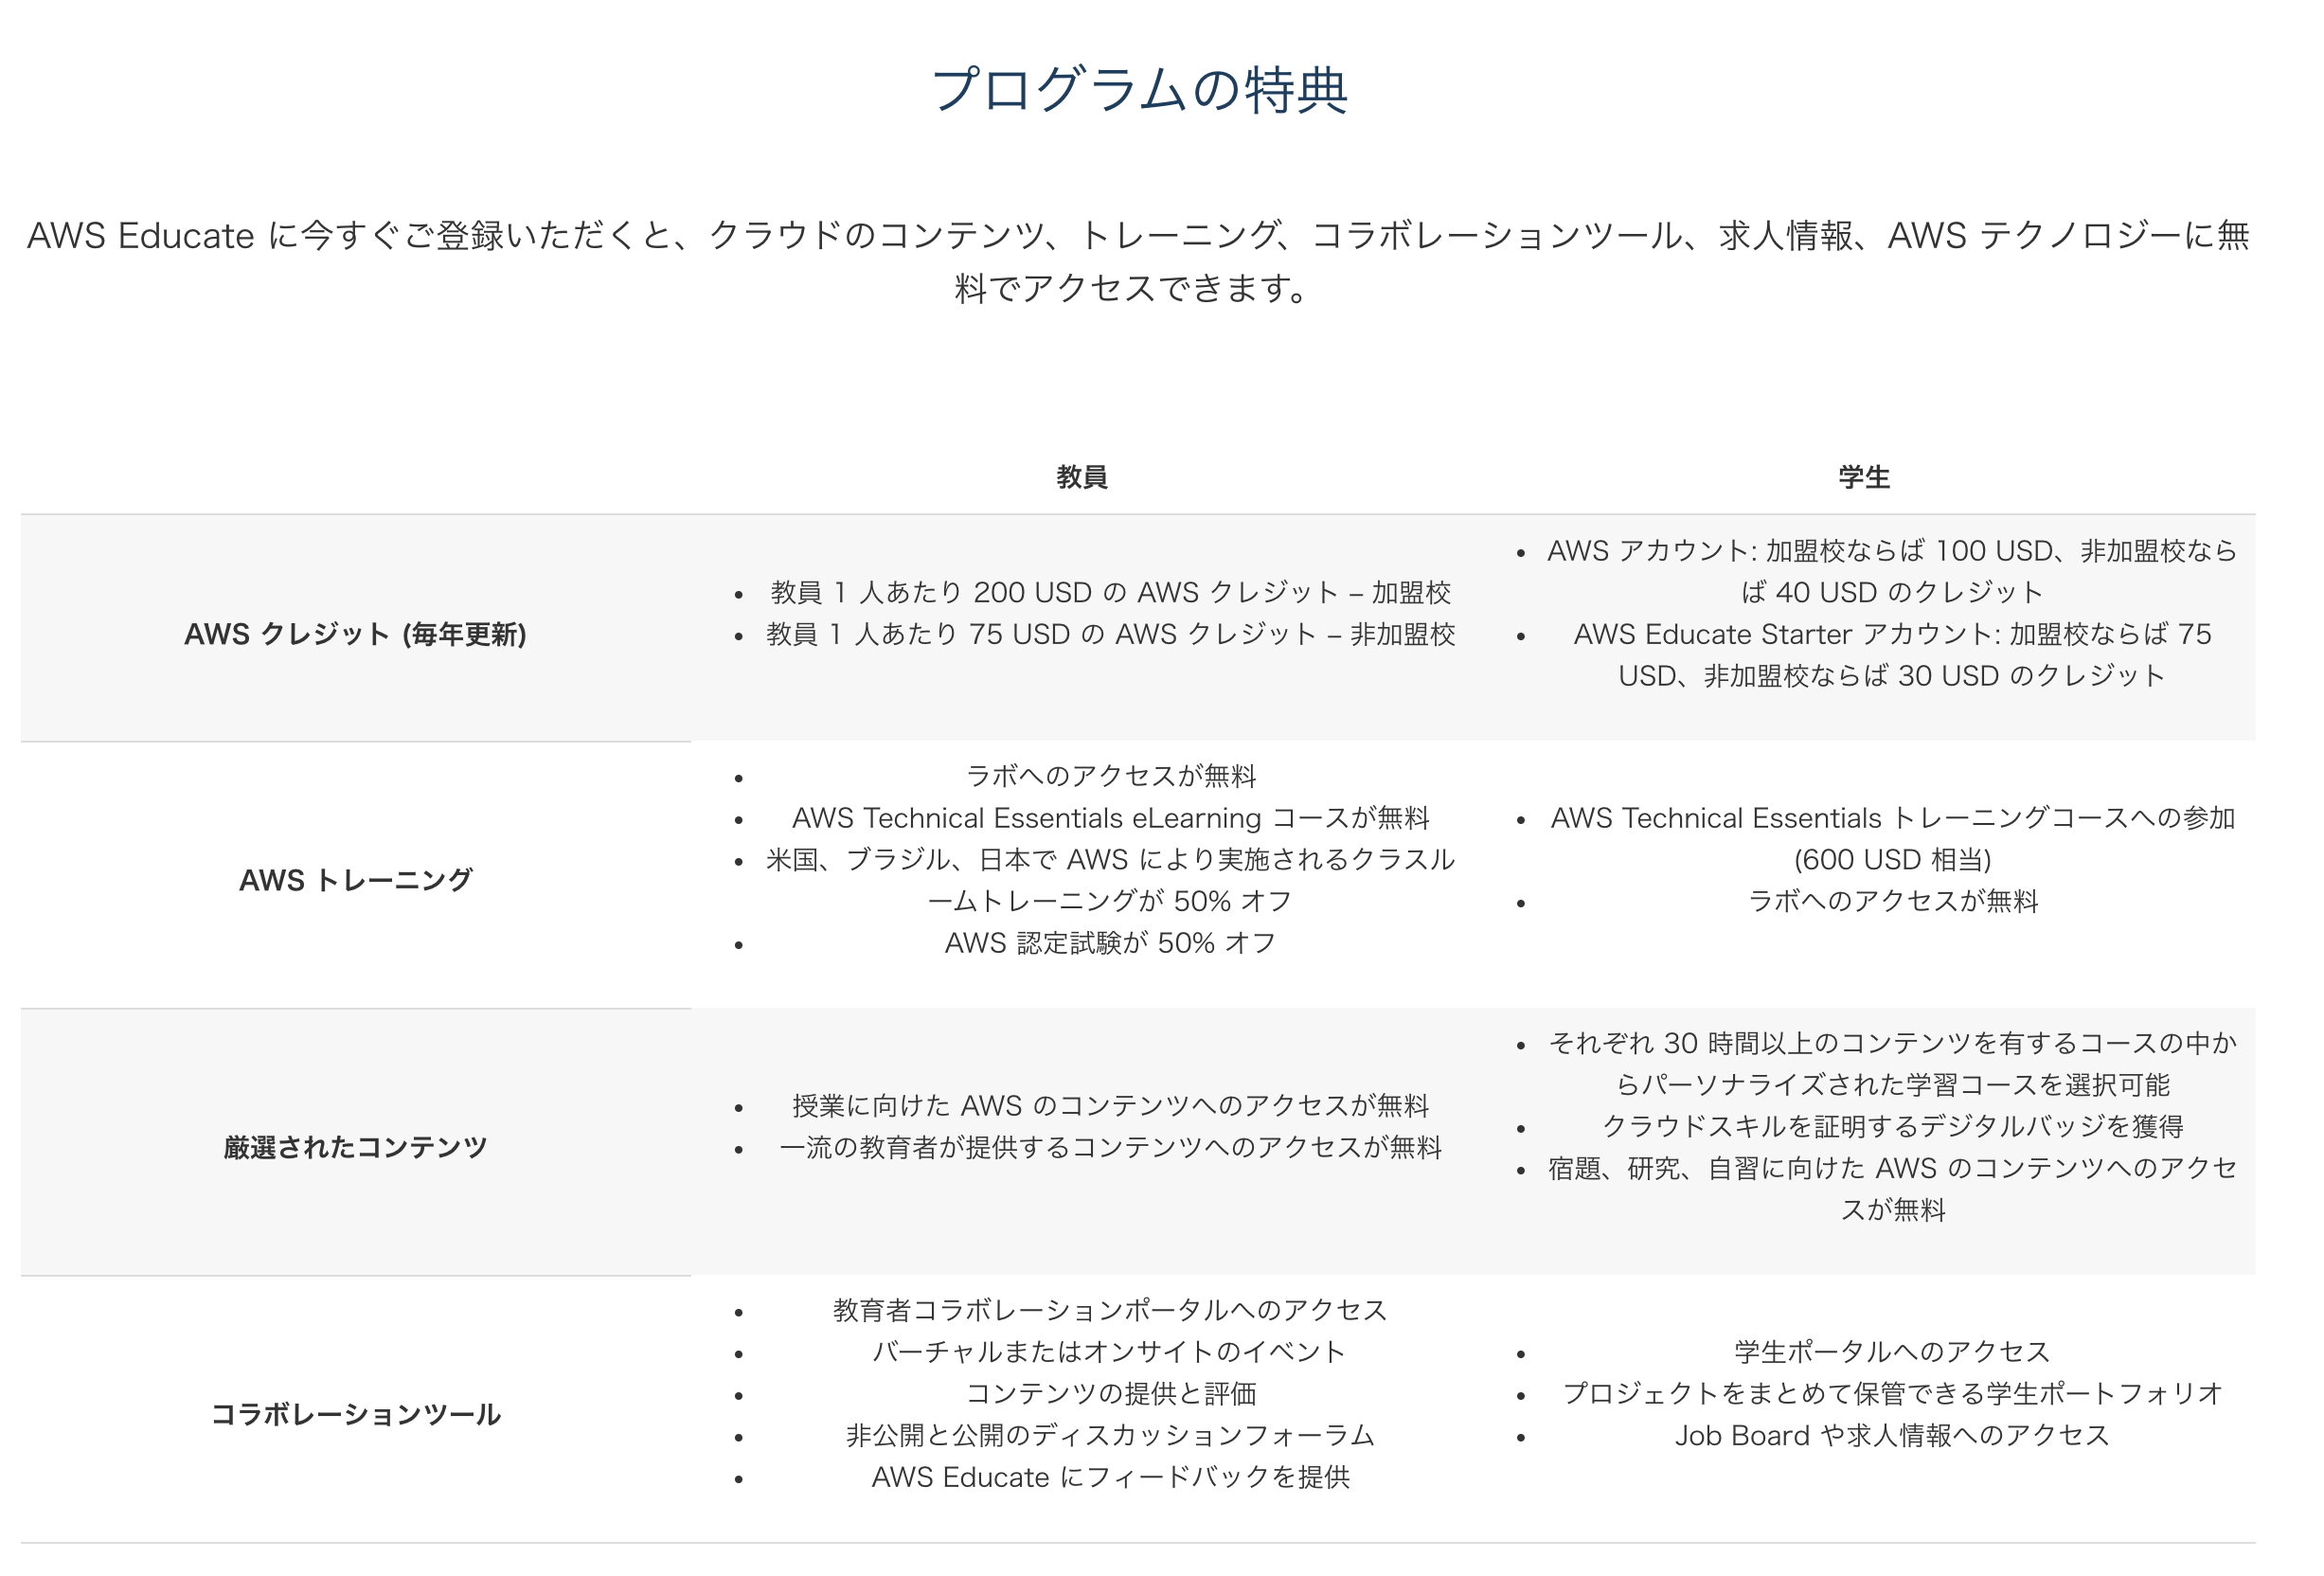 AWS educationに登録した static/images/post/aws_education.png